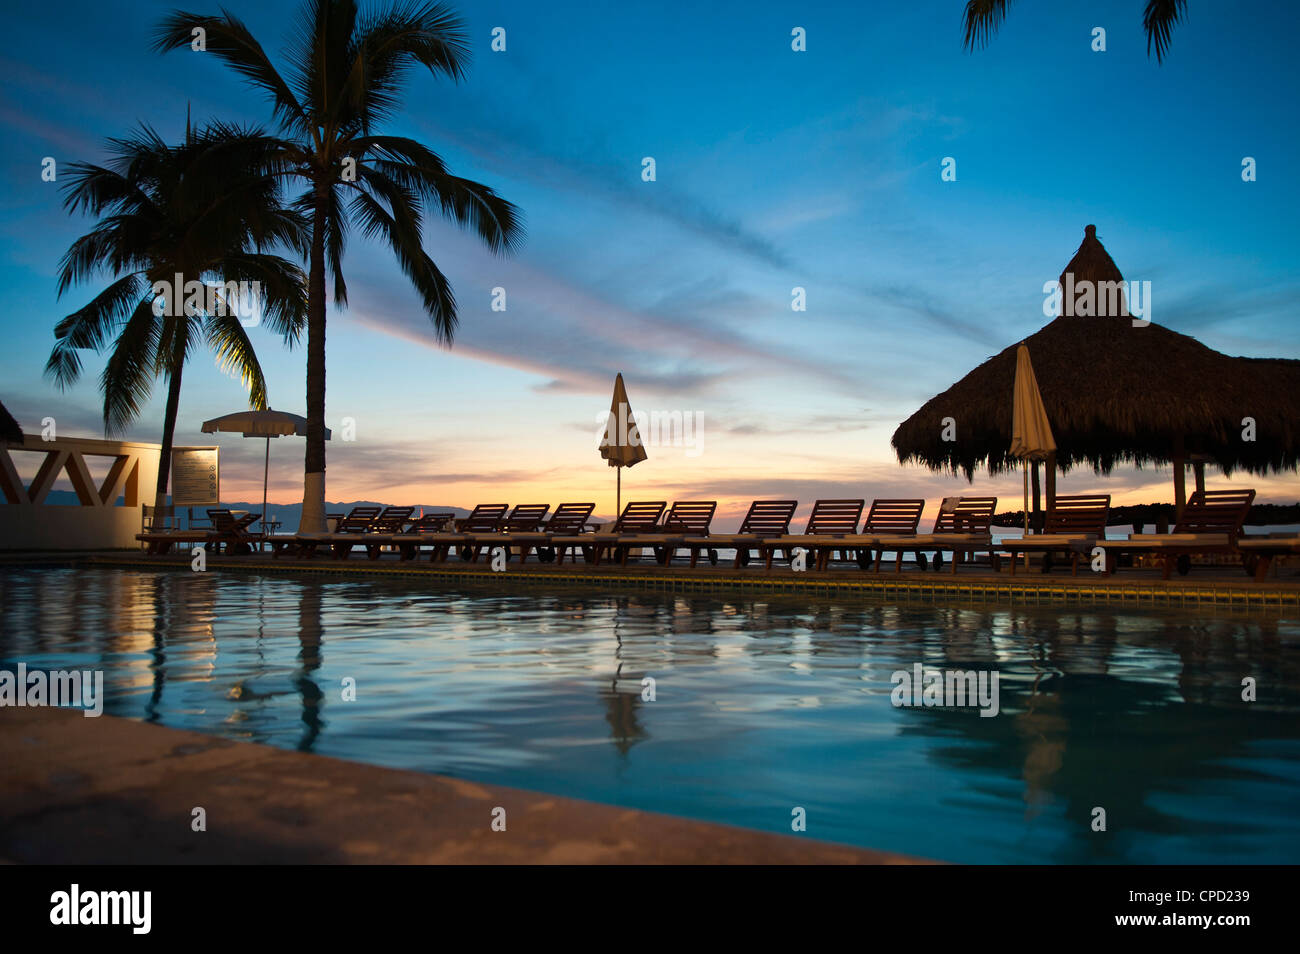 Villa Premiere Hotel and Spa, Puerto Vallarta, Jalisco, Mexico, North America - Stock Image